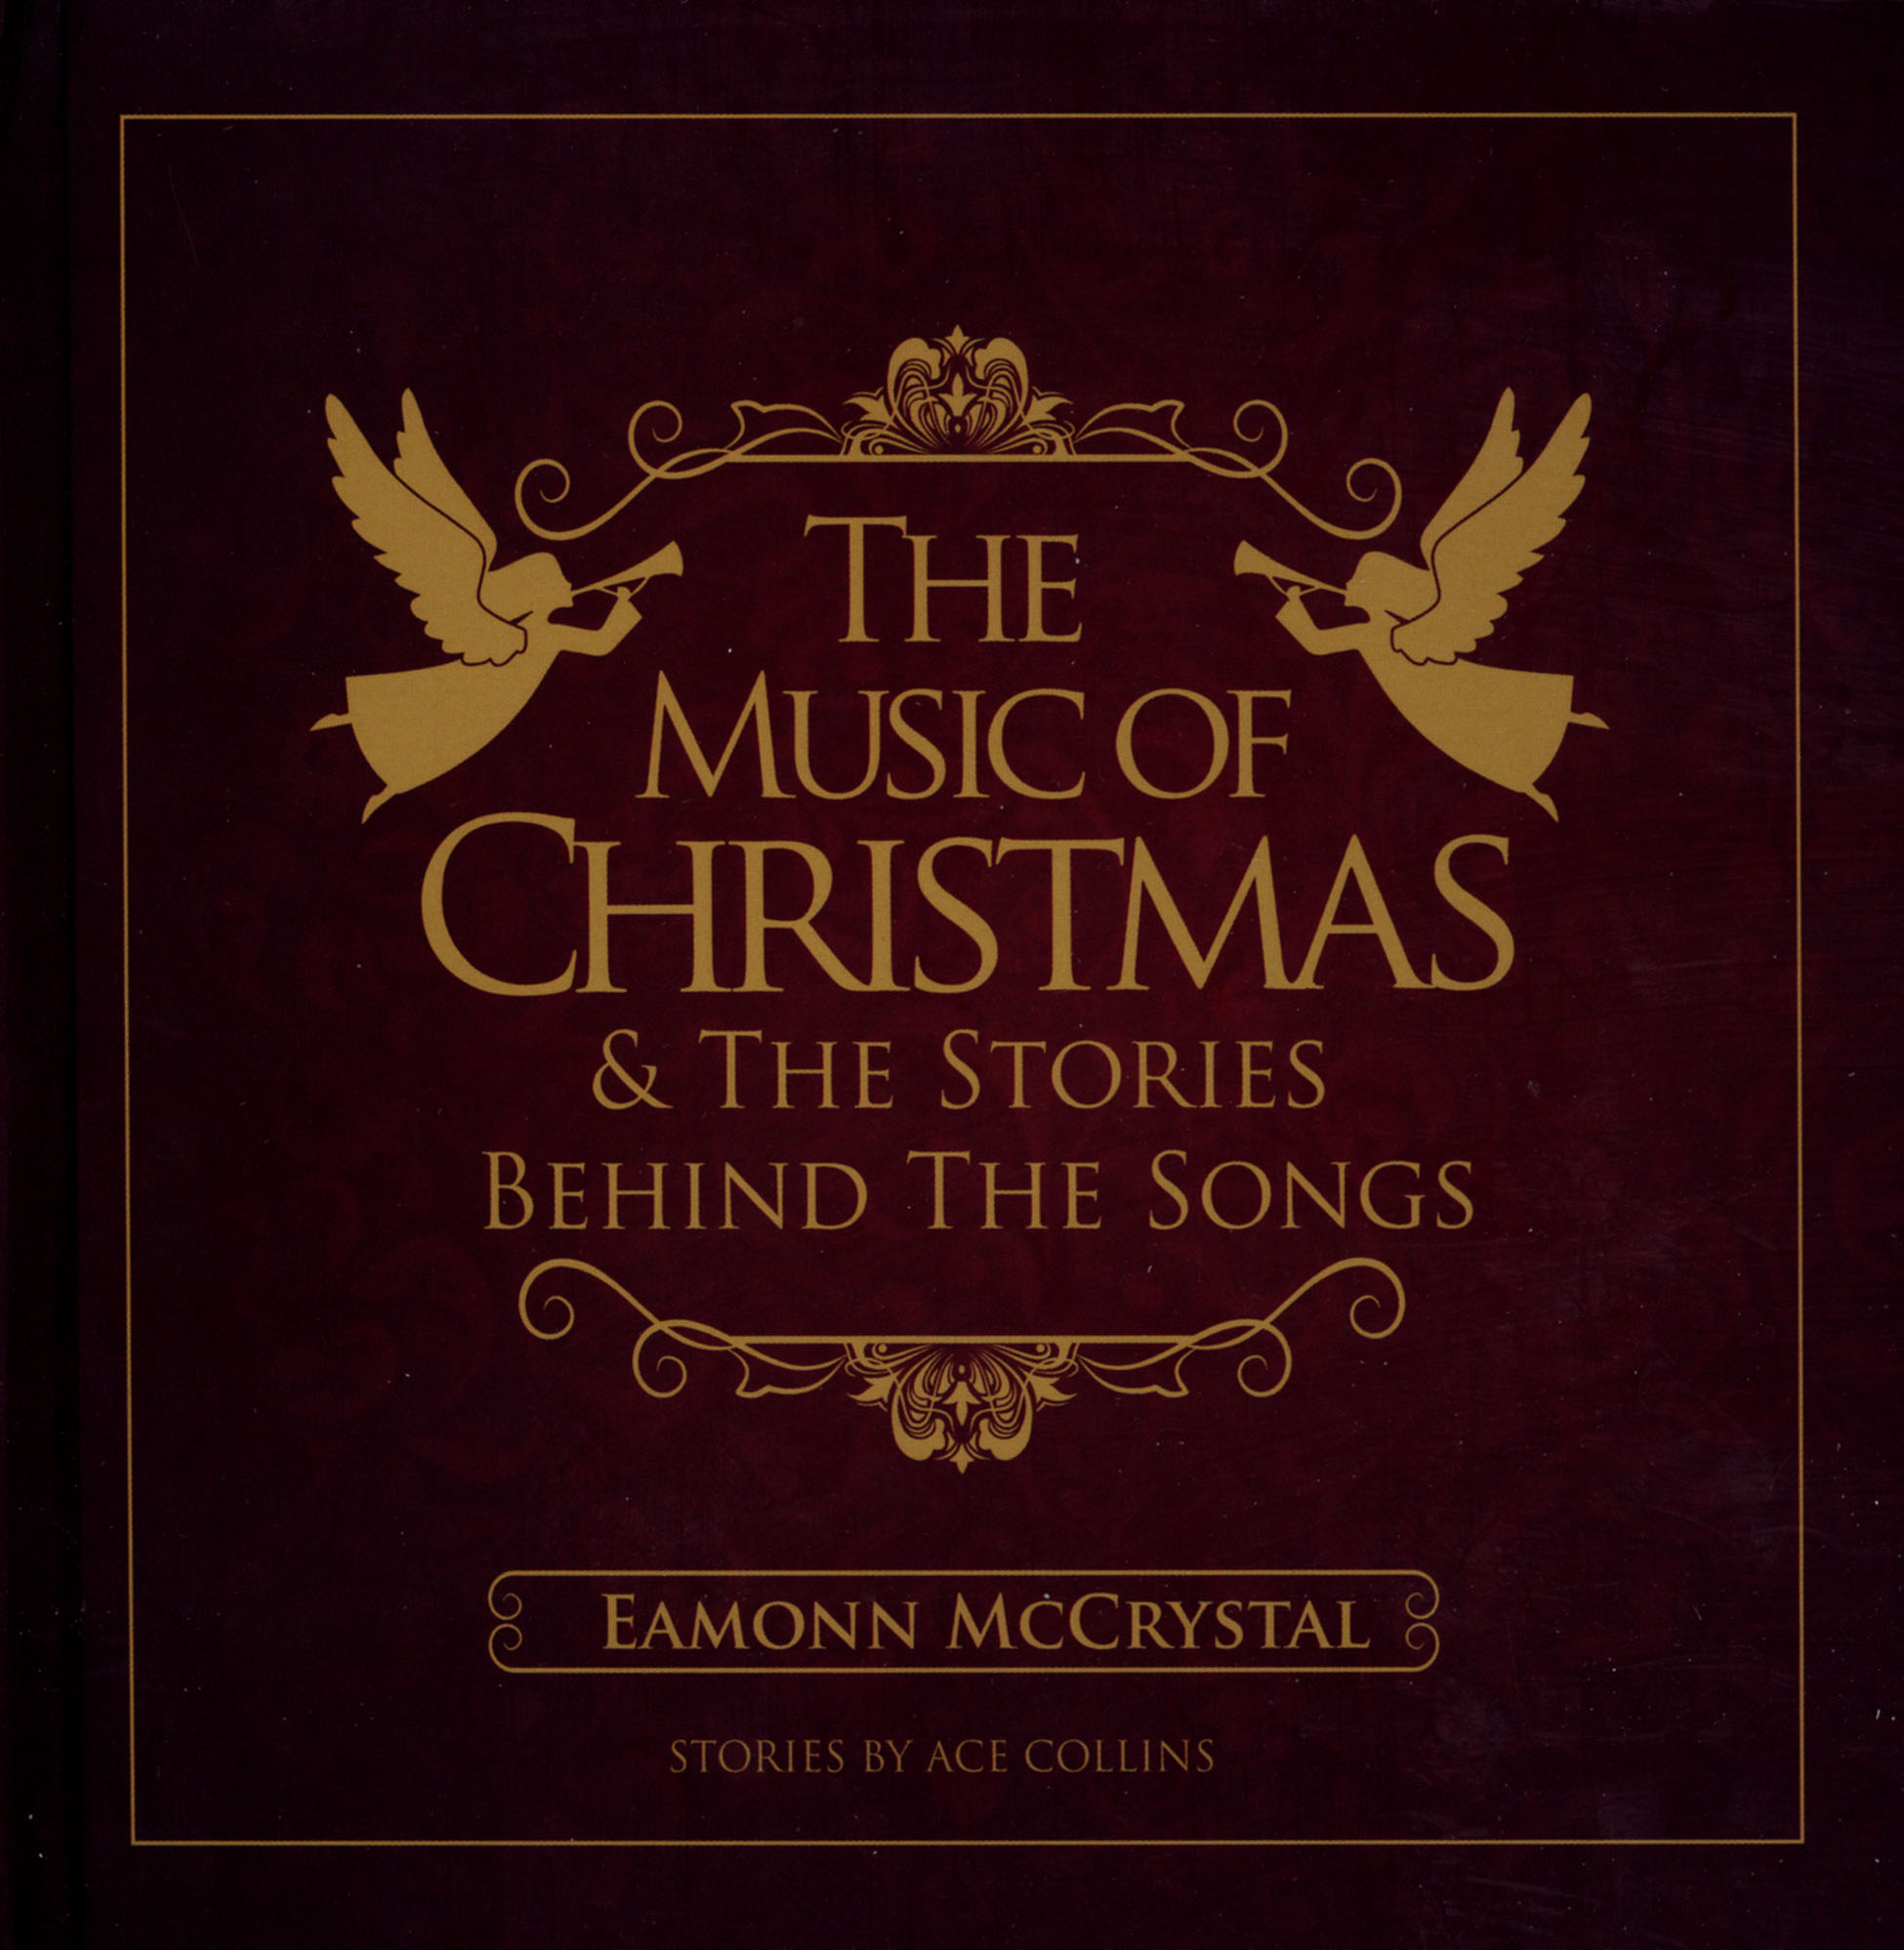 The Magic of Christmas & the Stories Behind the Songs